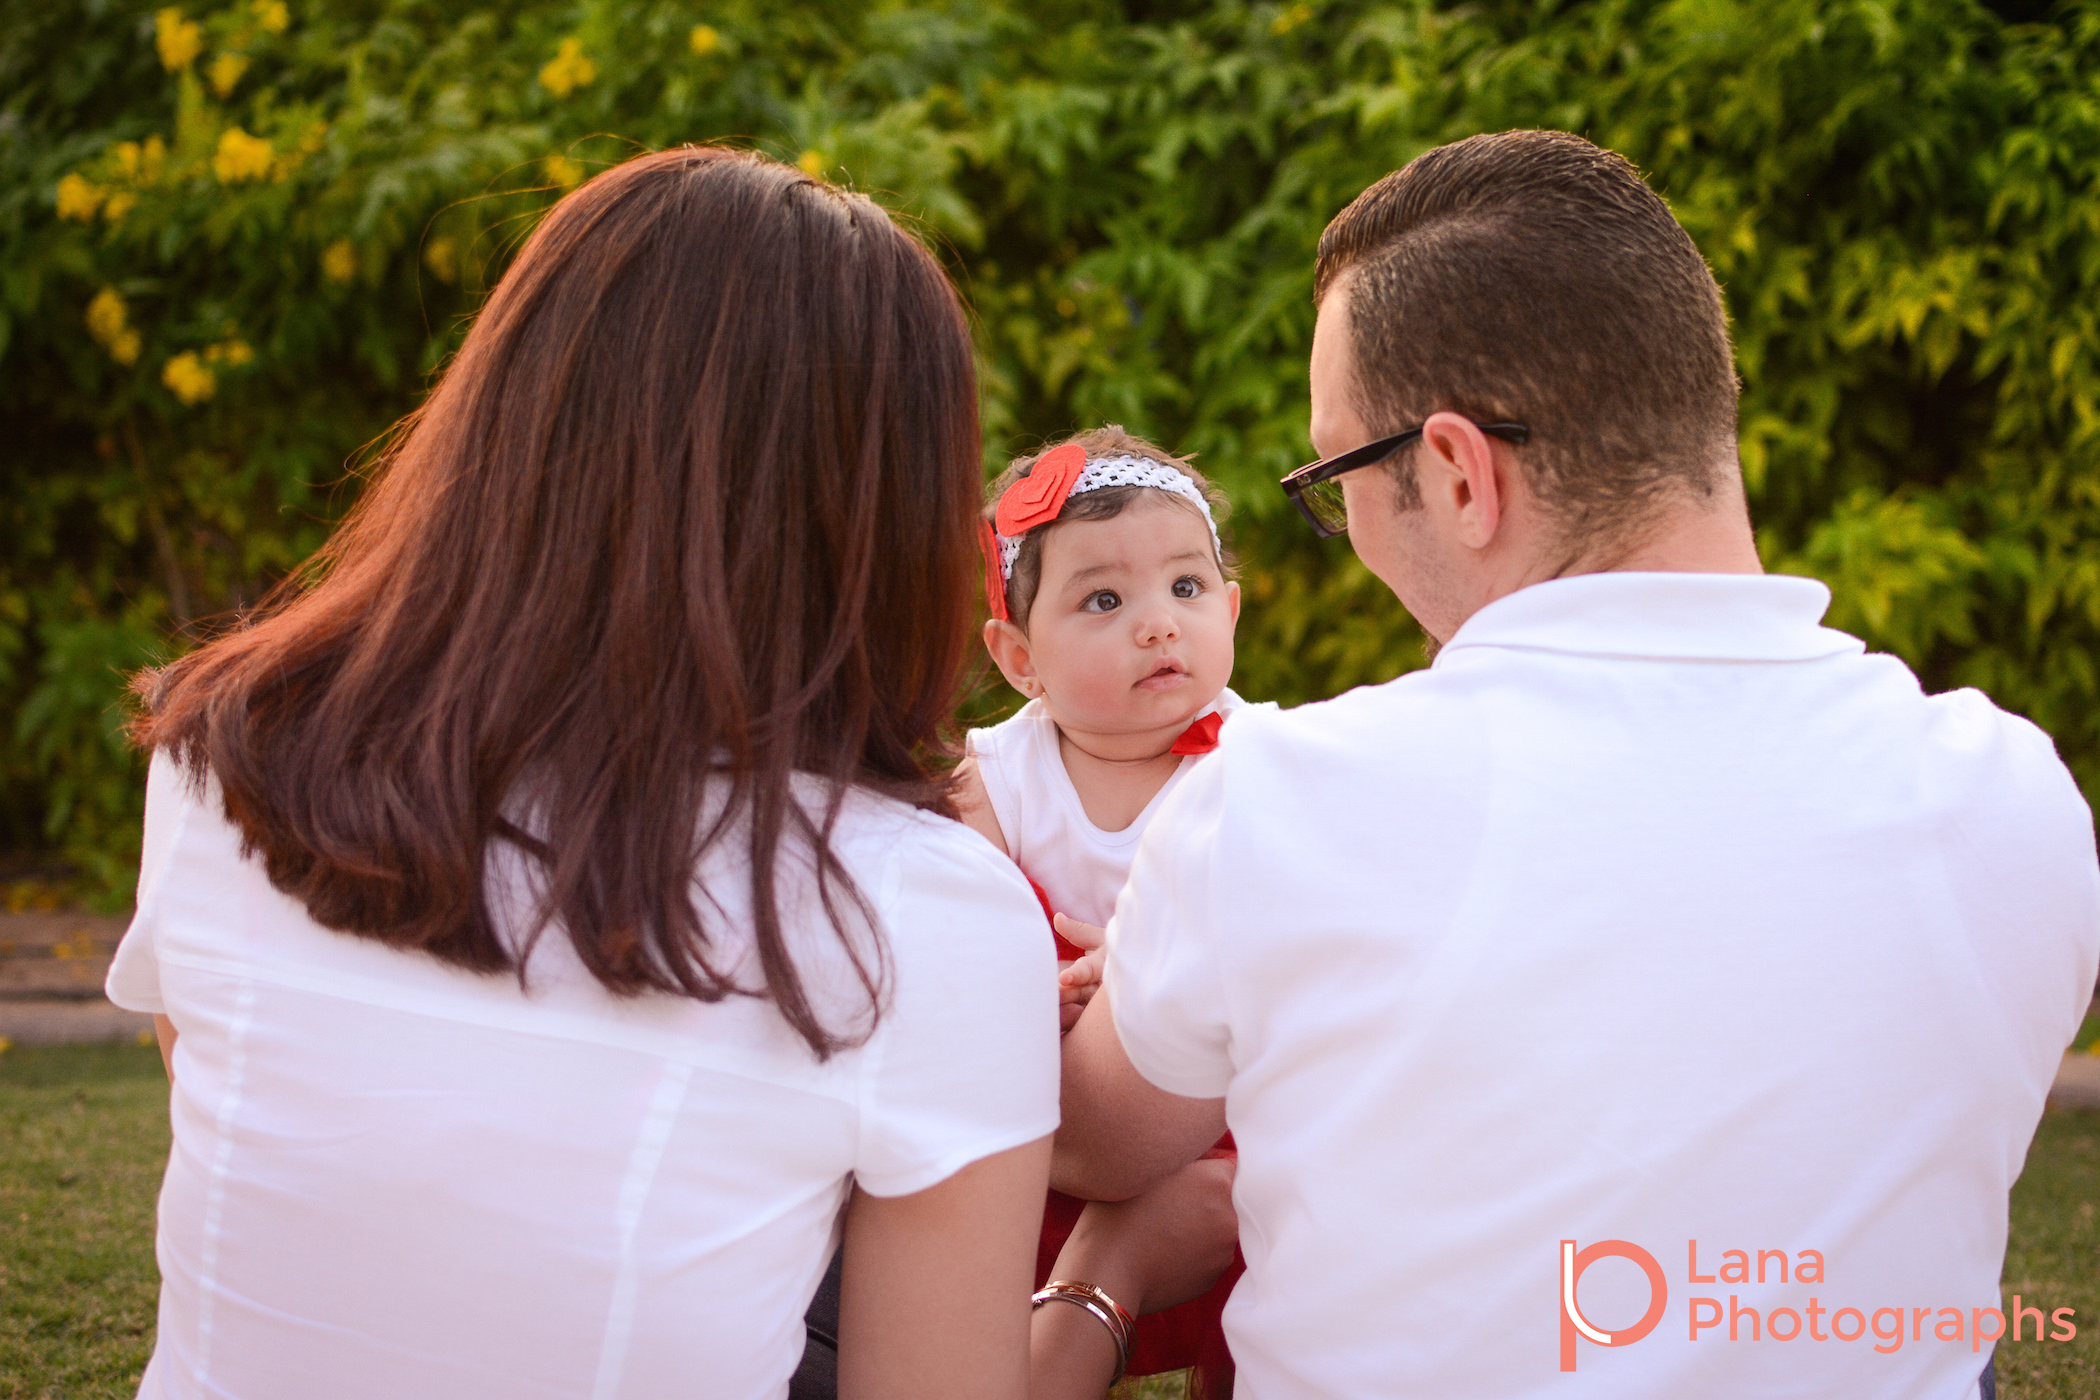 Dubai Family Photography family portrait of a family of three wearing red and white in the park